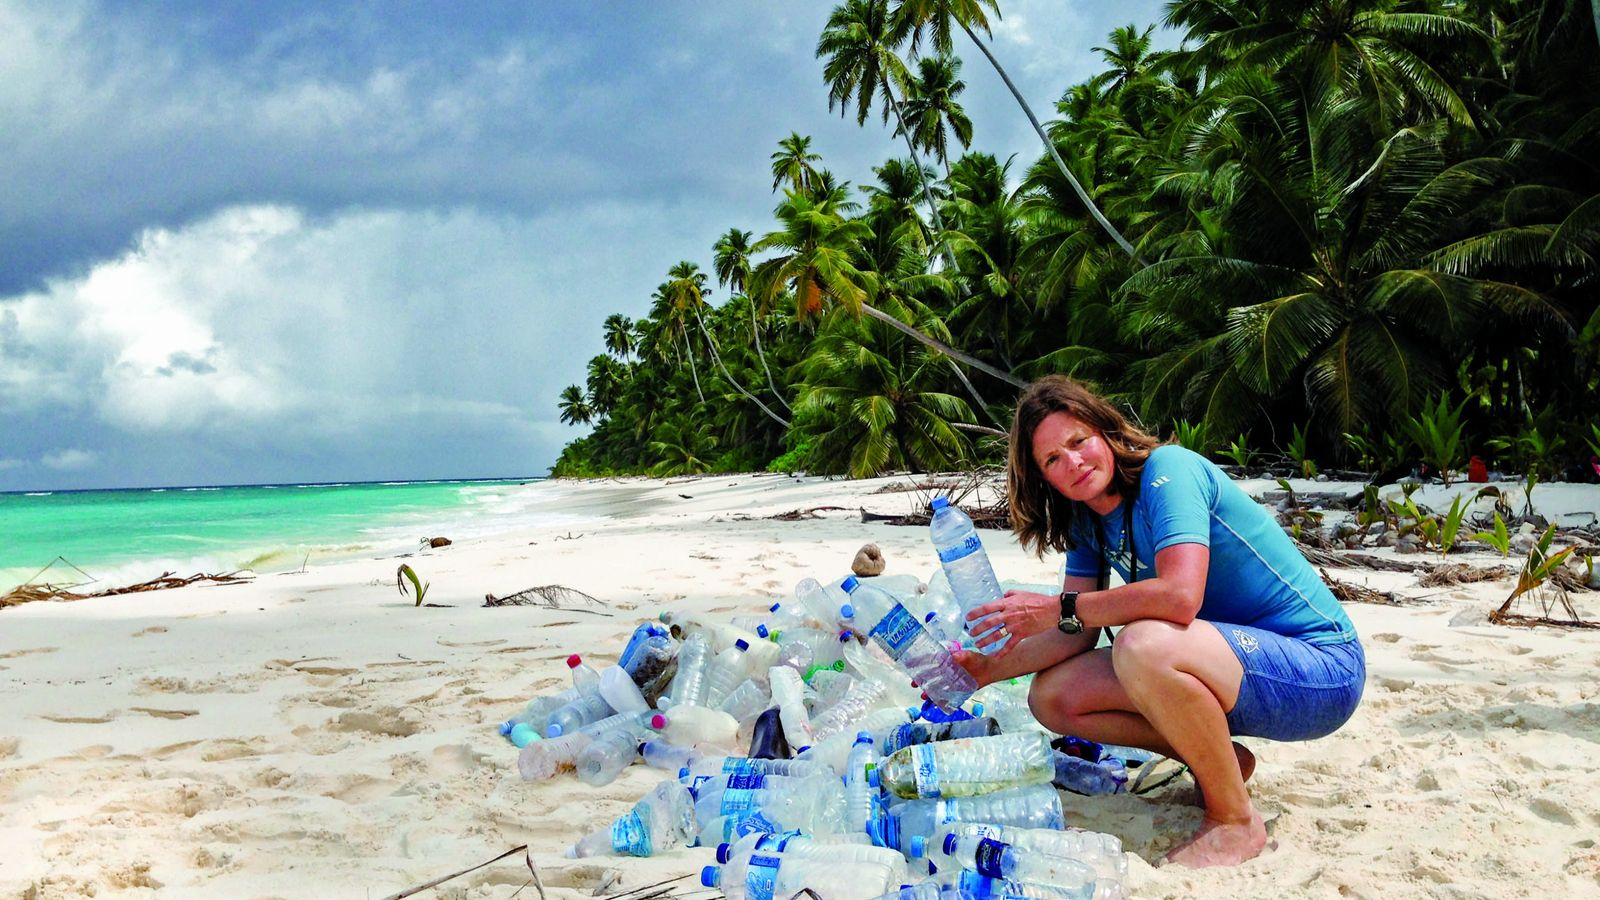 Heather Koldewey is campaigning for an end to single-use plastic bottles and straws.